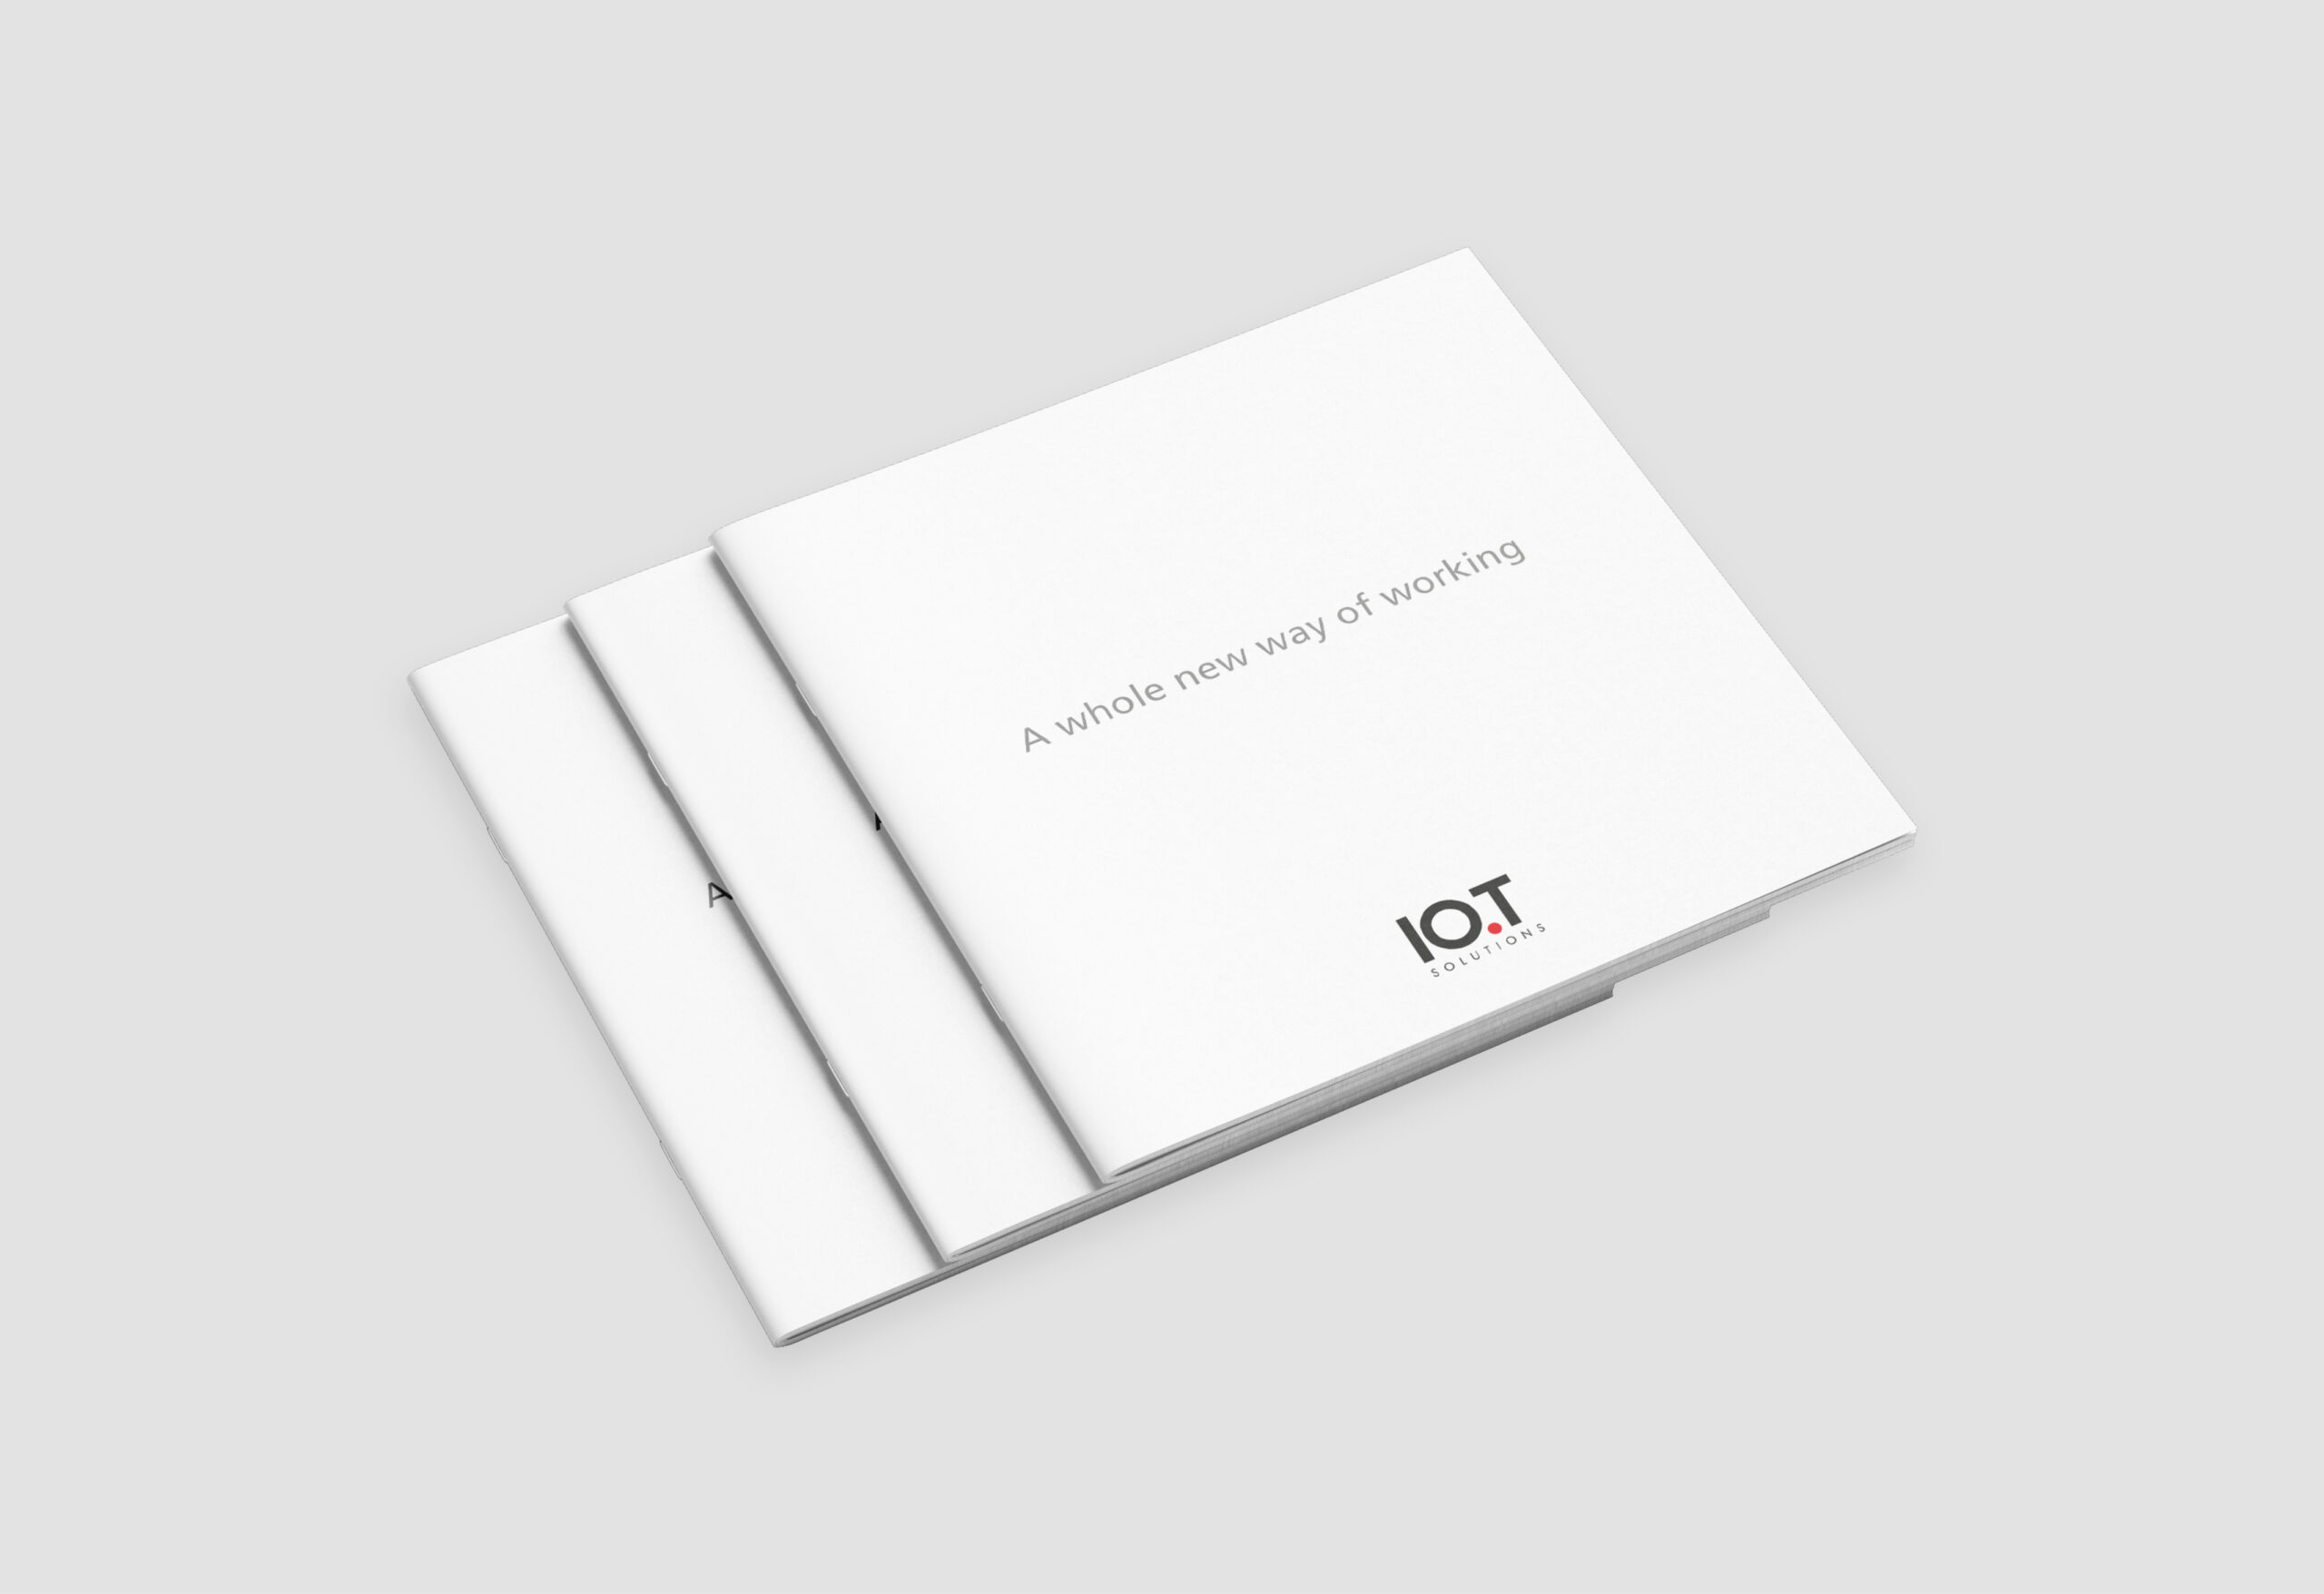 Romanoassociati_Behance_Iot_brochure_cover